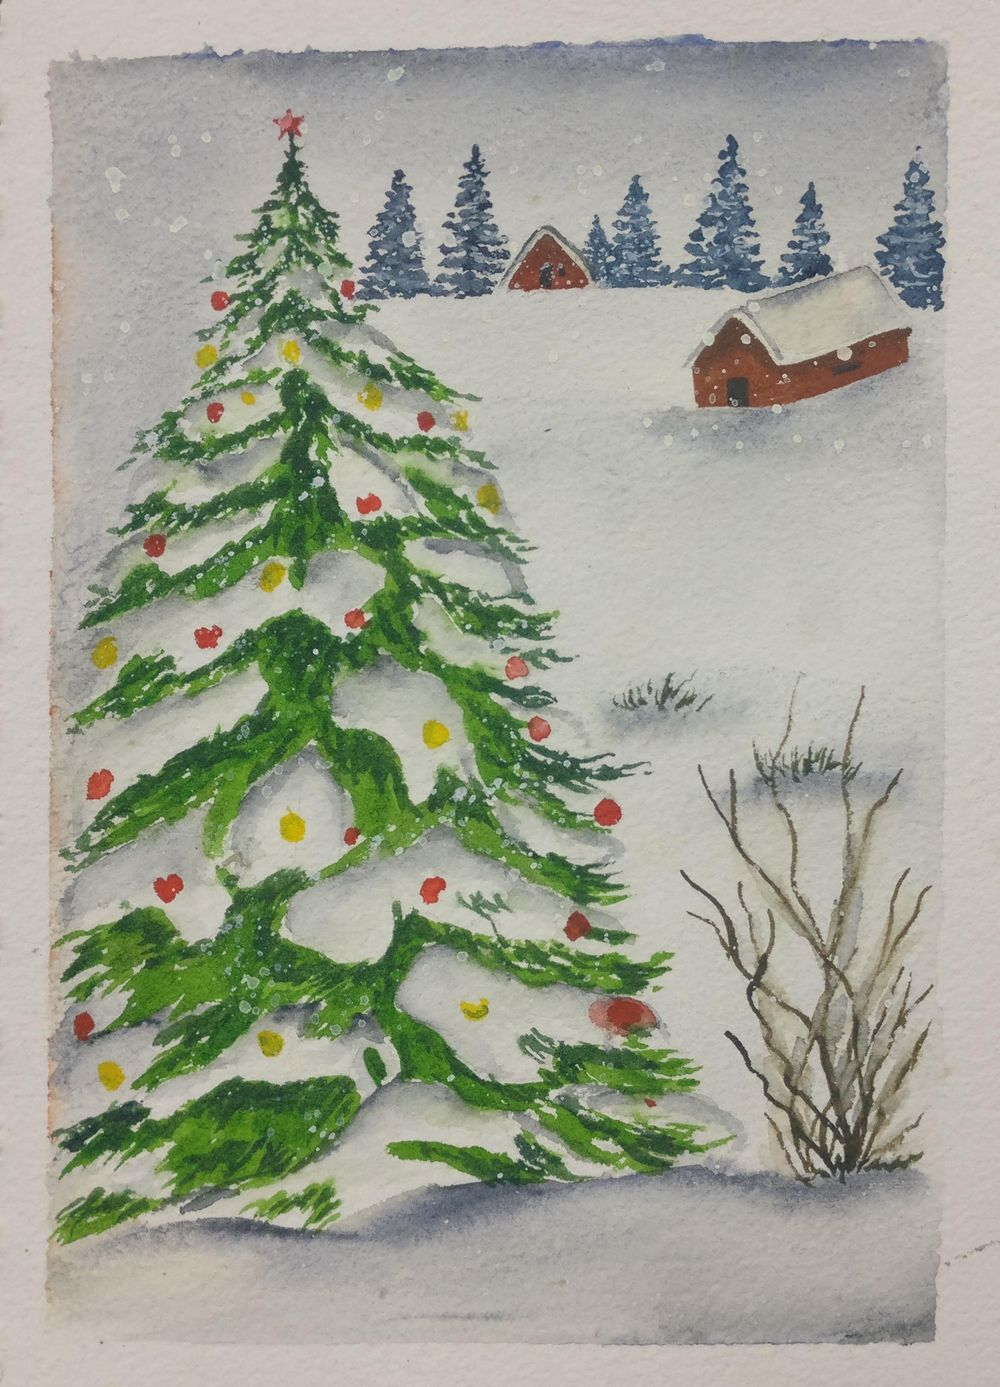 Christmas with watercolors - image 12 - student project